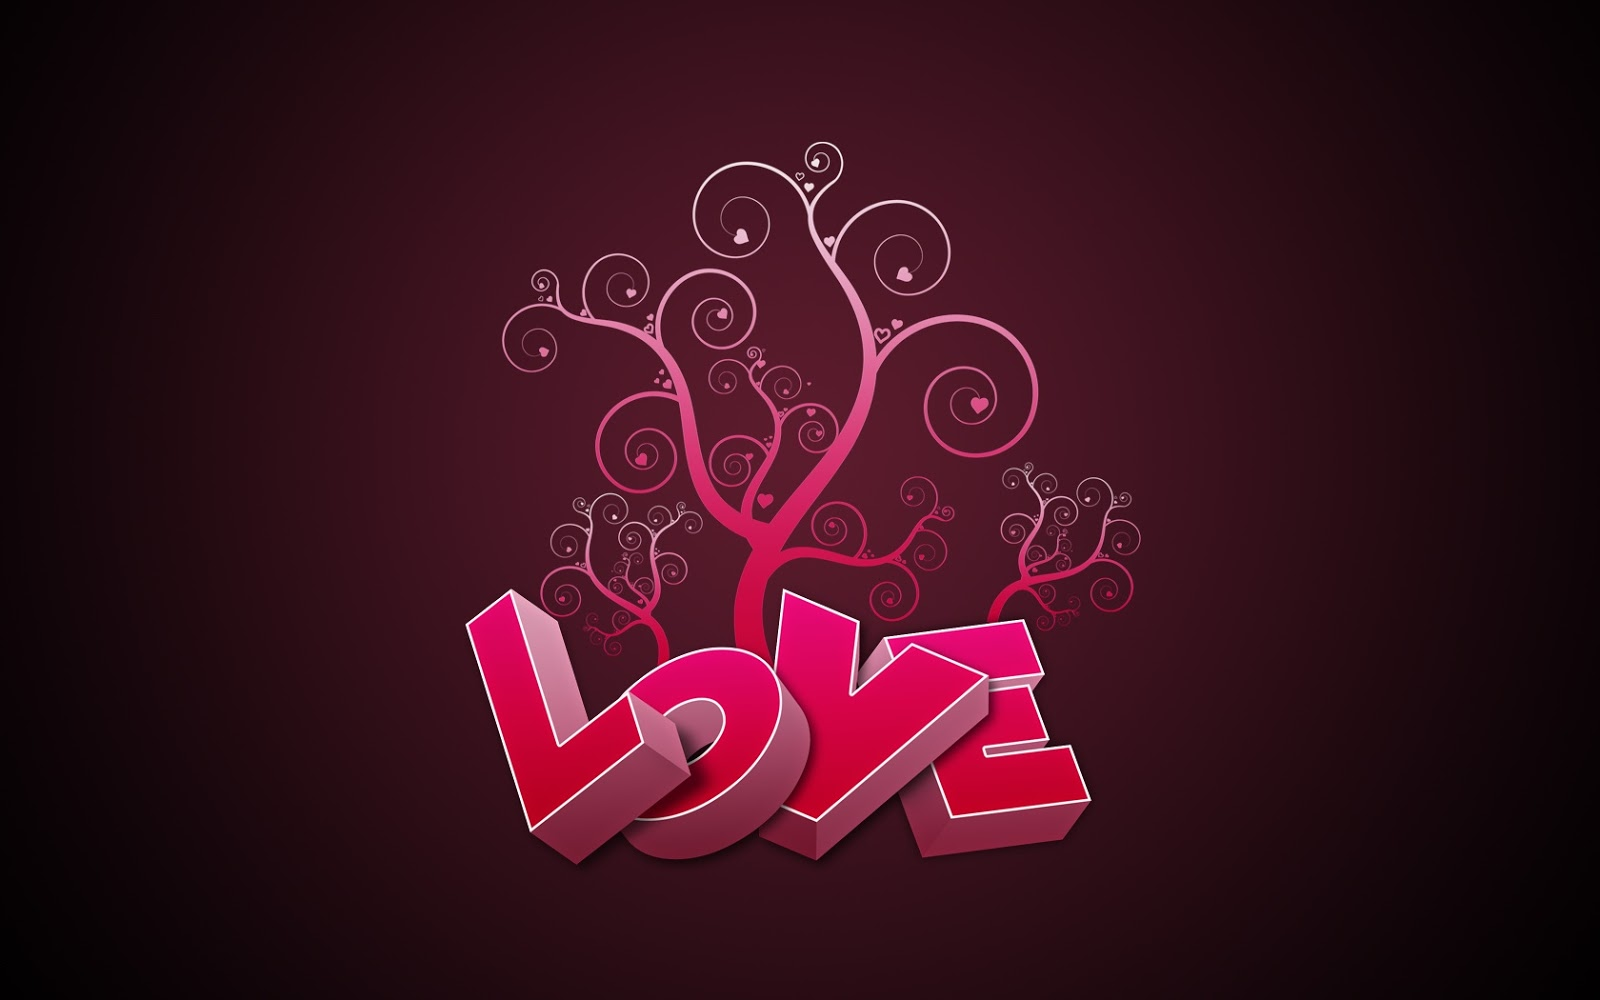 Love in Pink 1680x1050 Wallpaper